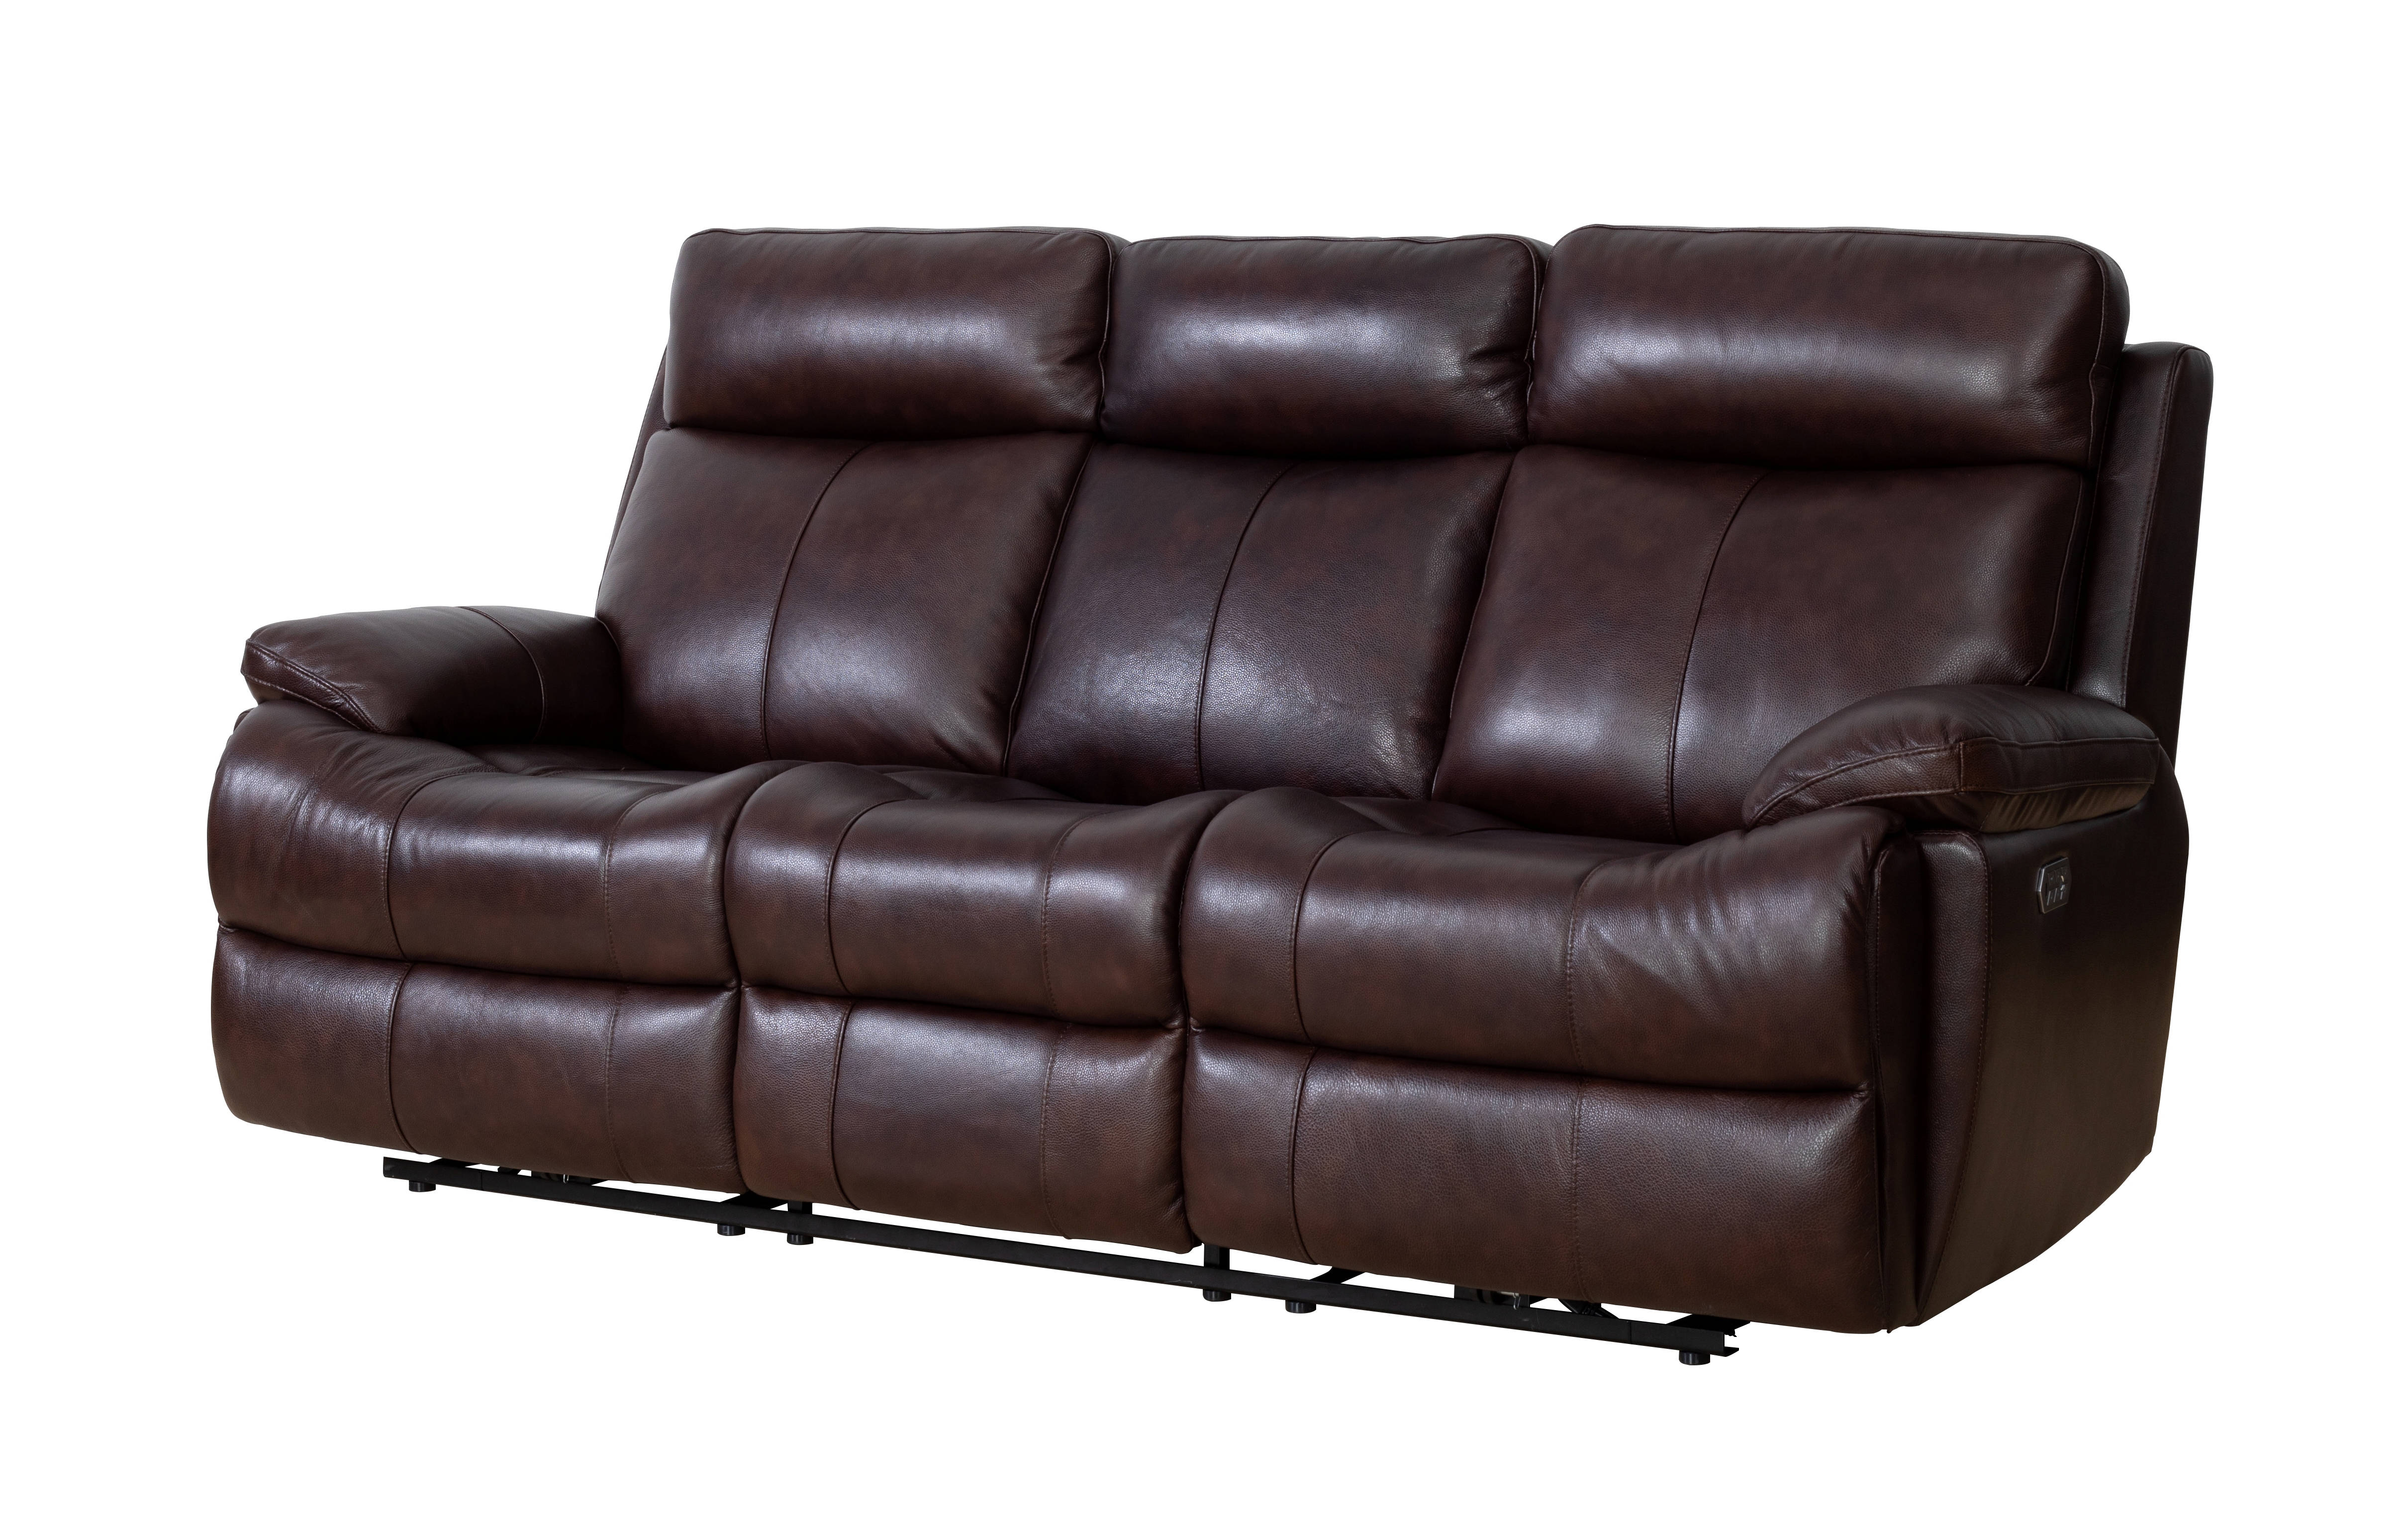 Barcalounger Bryce Ryegate Fudge Power Reclining Sofa With